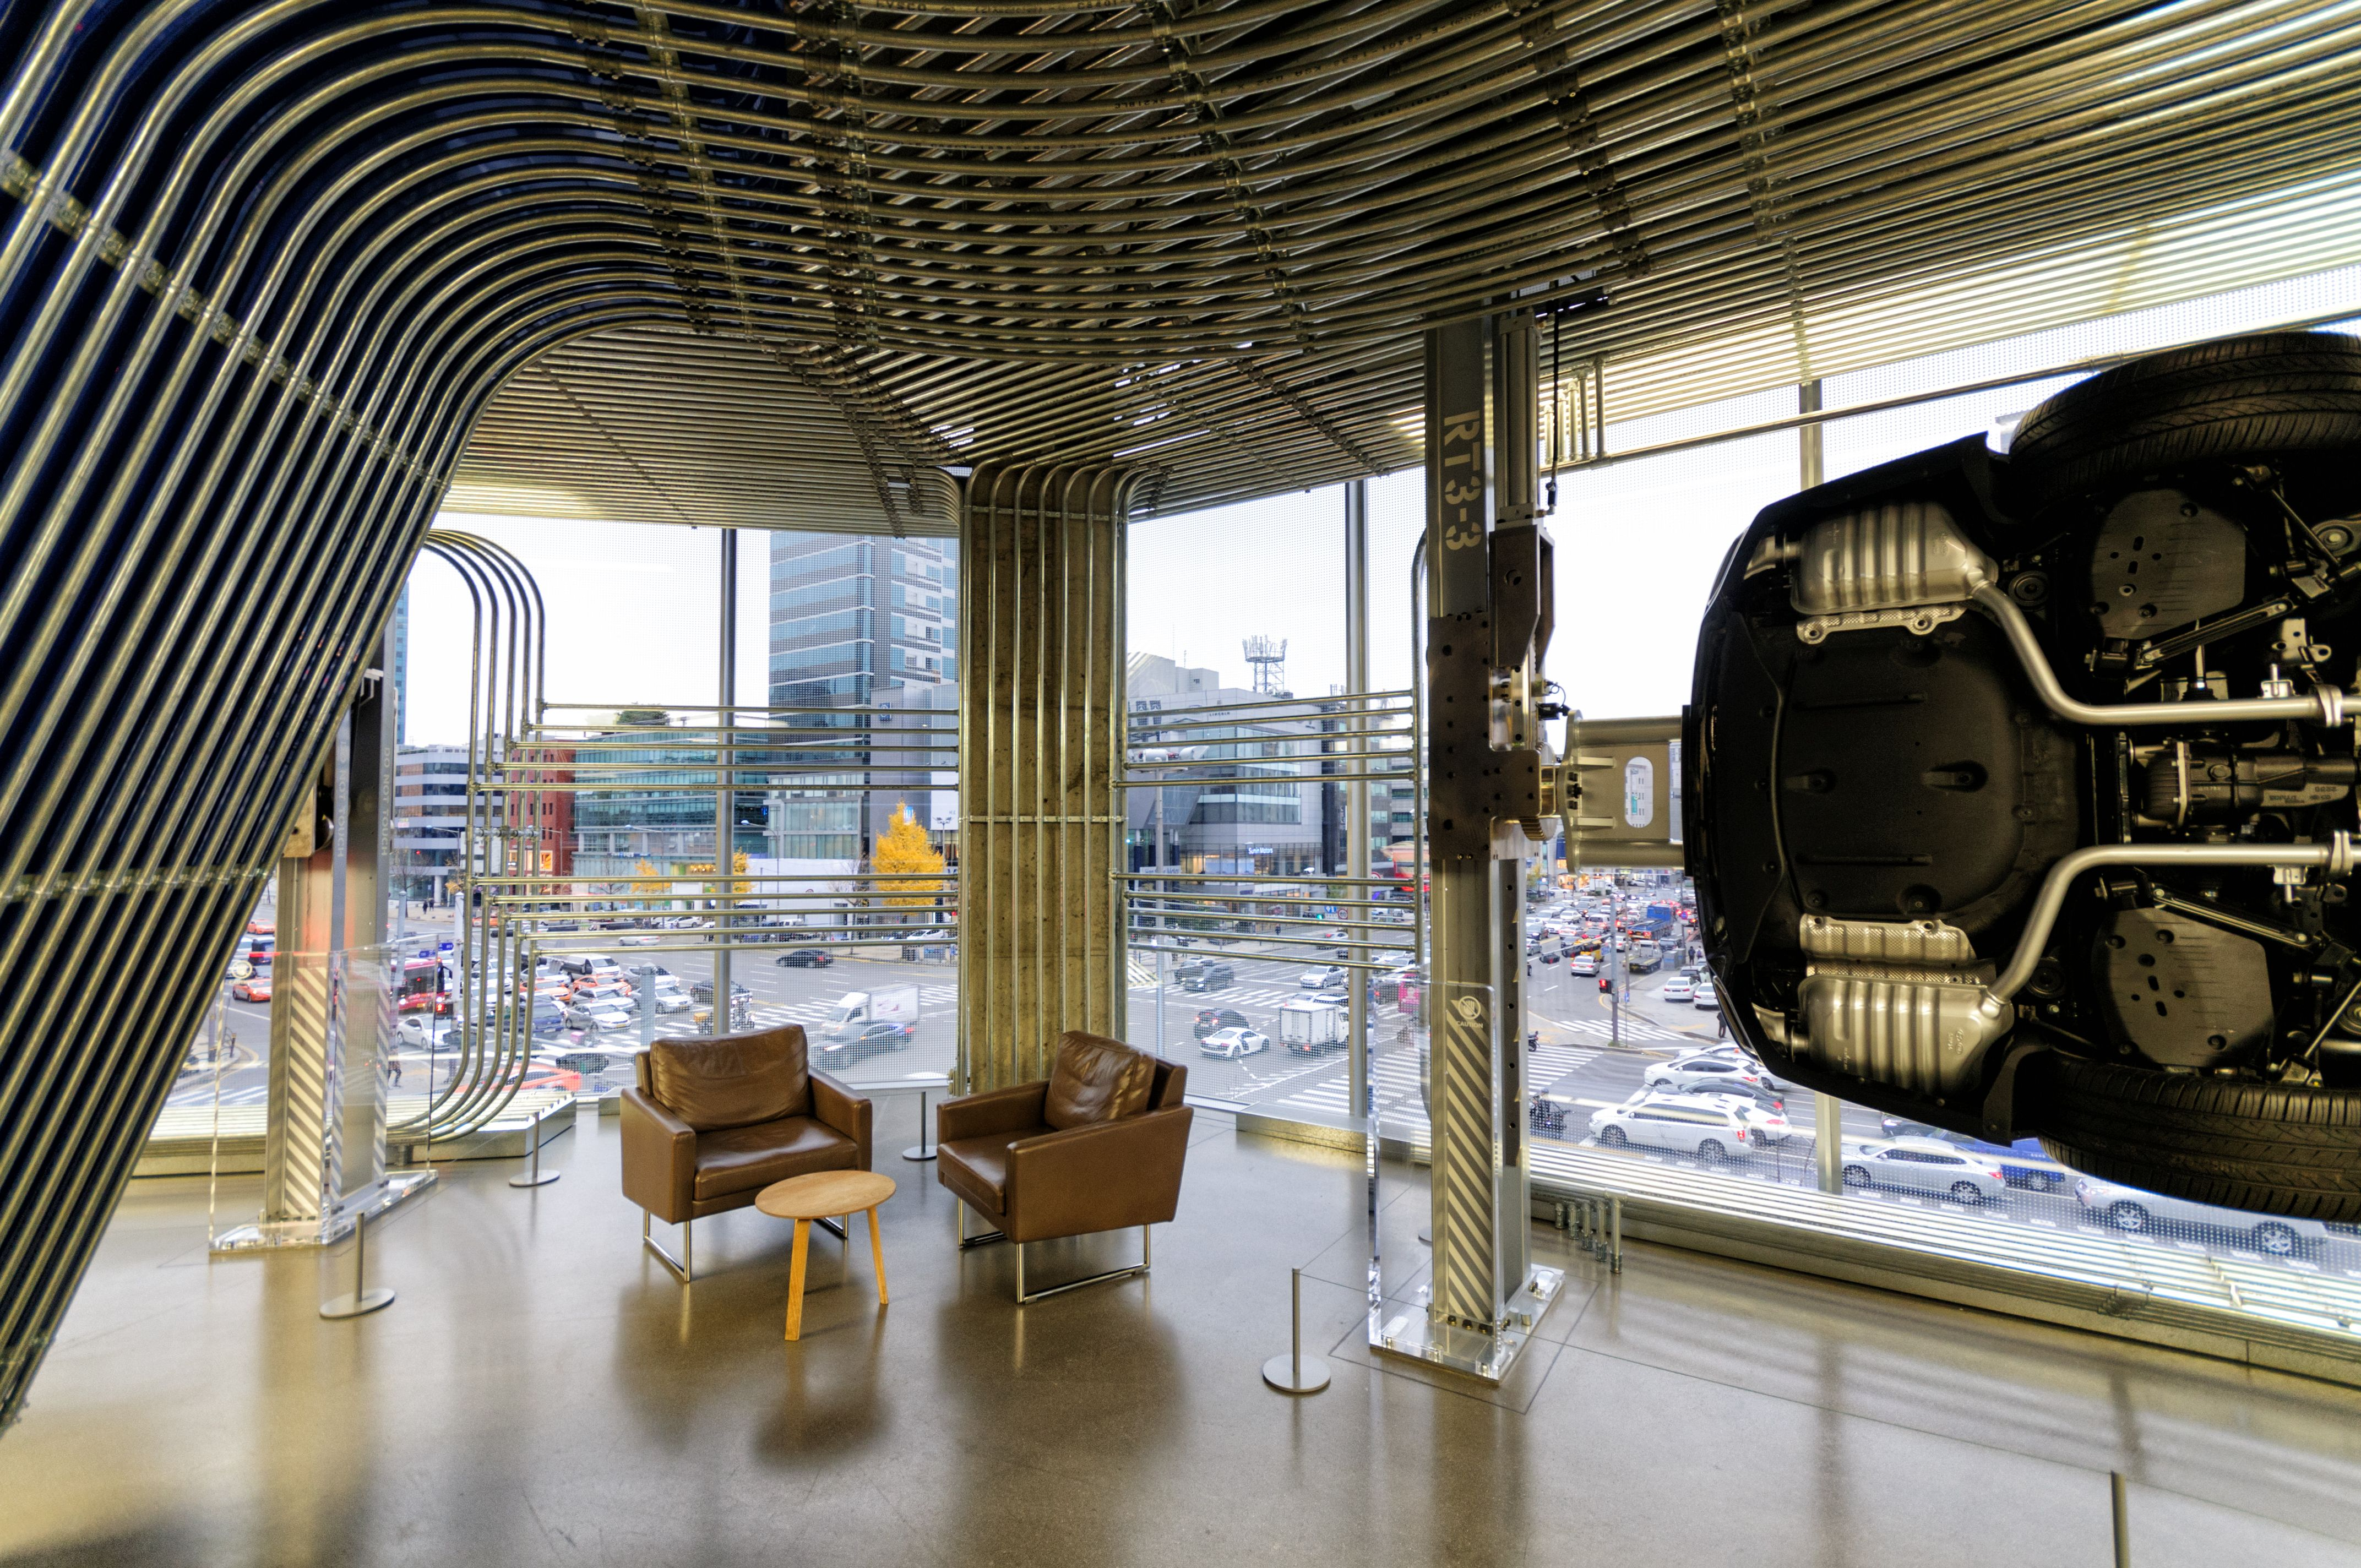 Images of rooms futuristic and industrial interior of a car showroom in cheongdam ward gangnam district seoul south korea